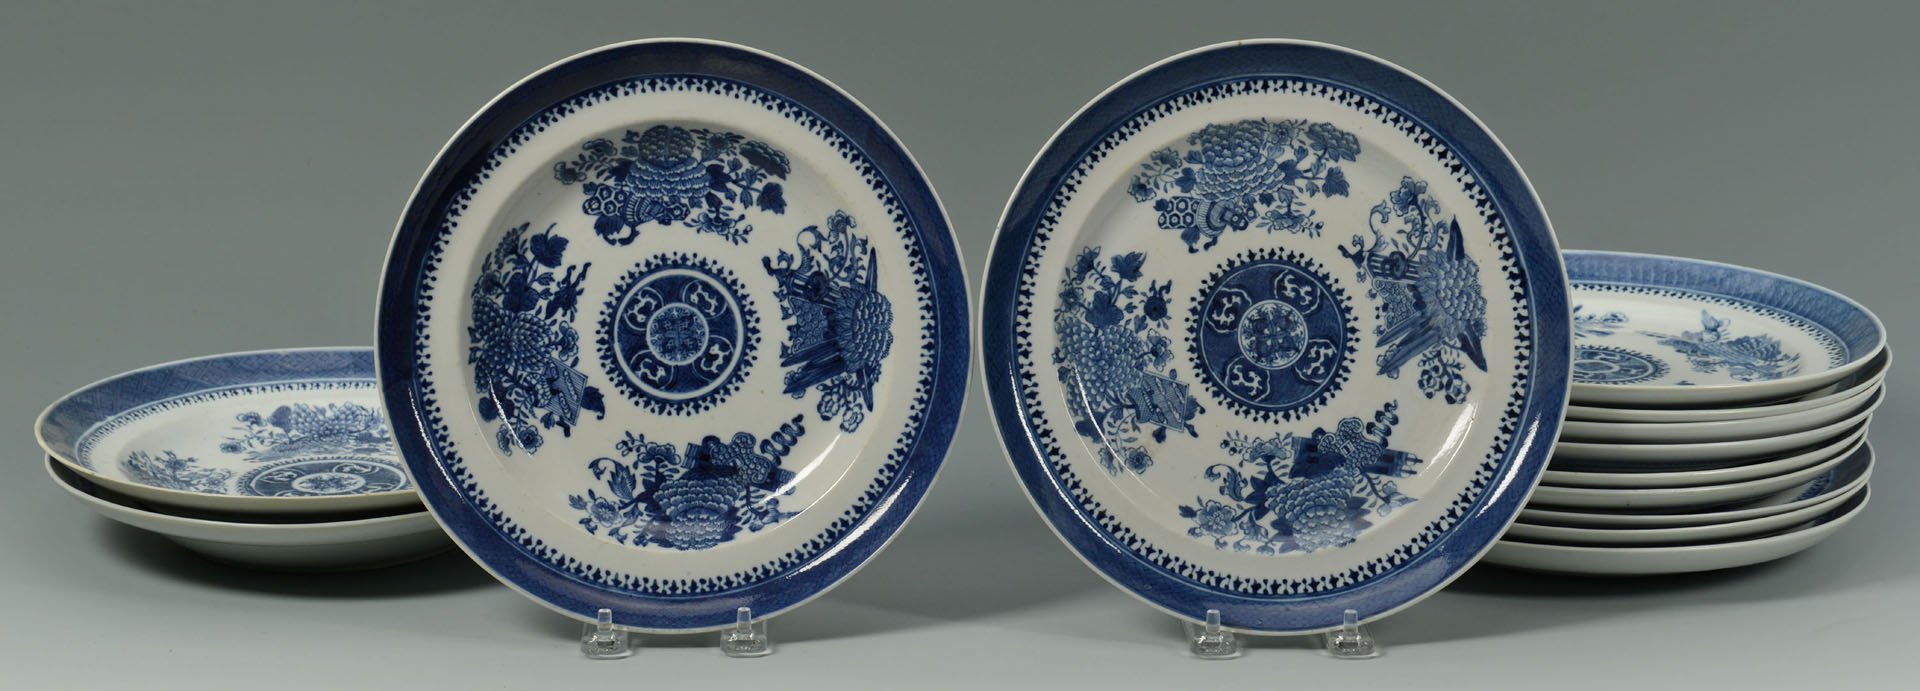 14 Chinese Export Porcelain Blue Fitzhugh Items